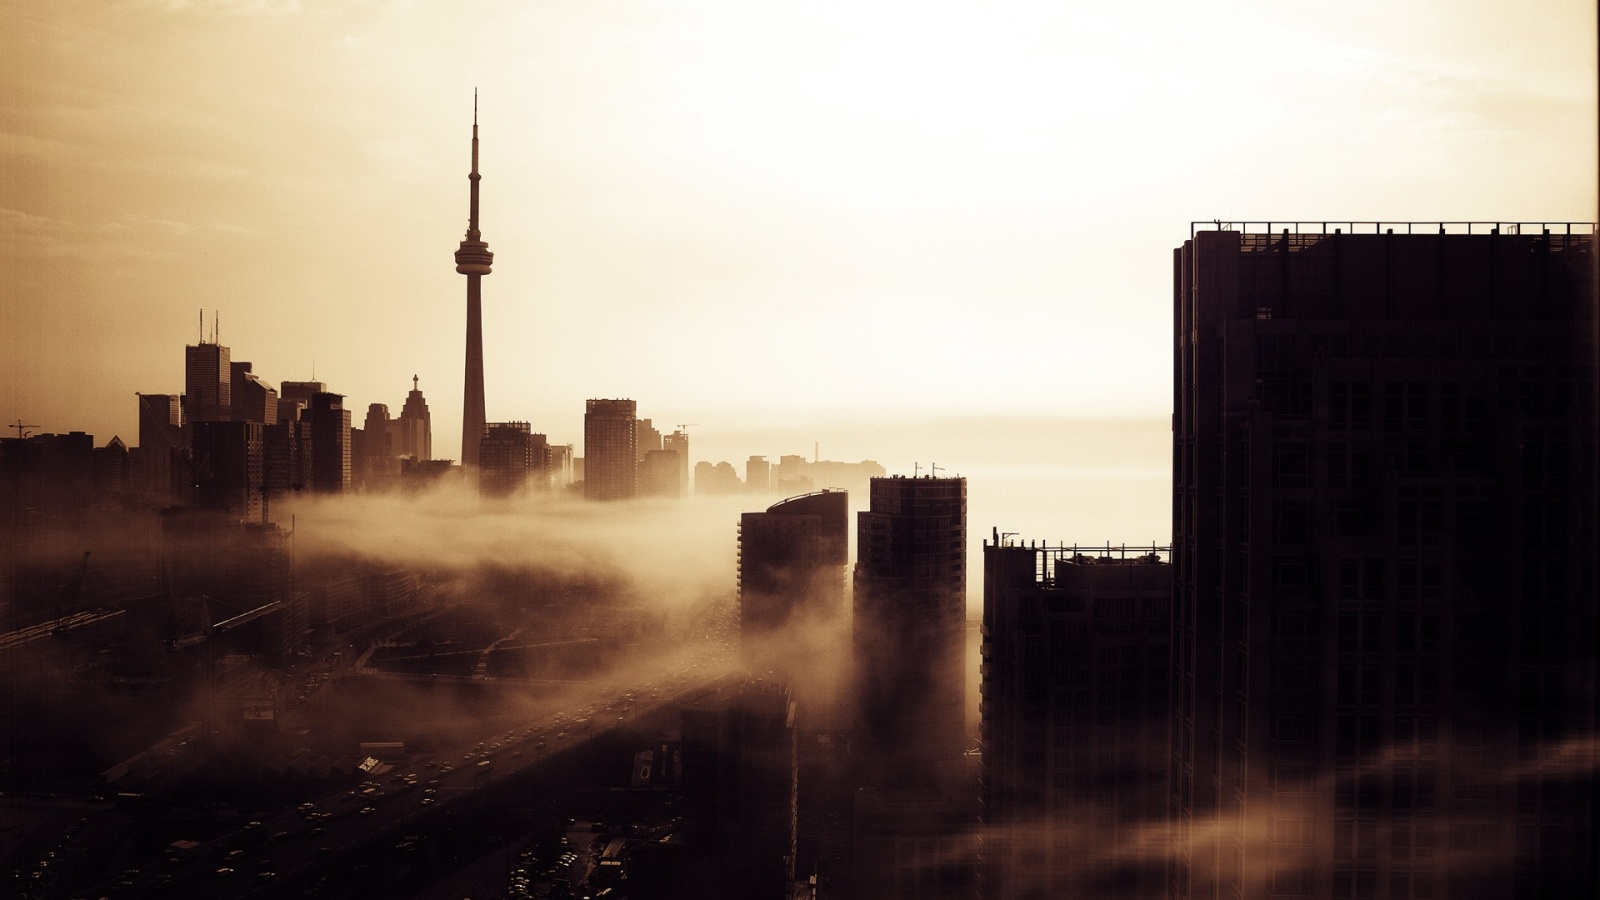 Toronto Black And White Wallpaper 1080p Is Cool Wallpapers